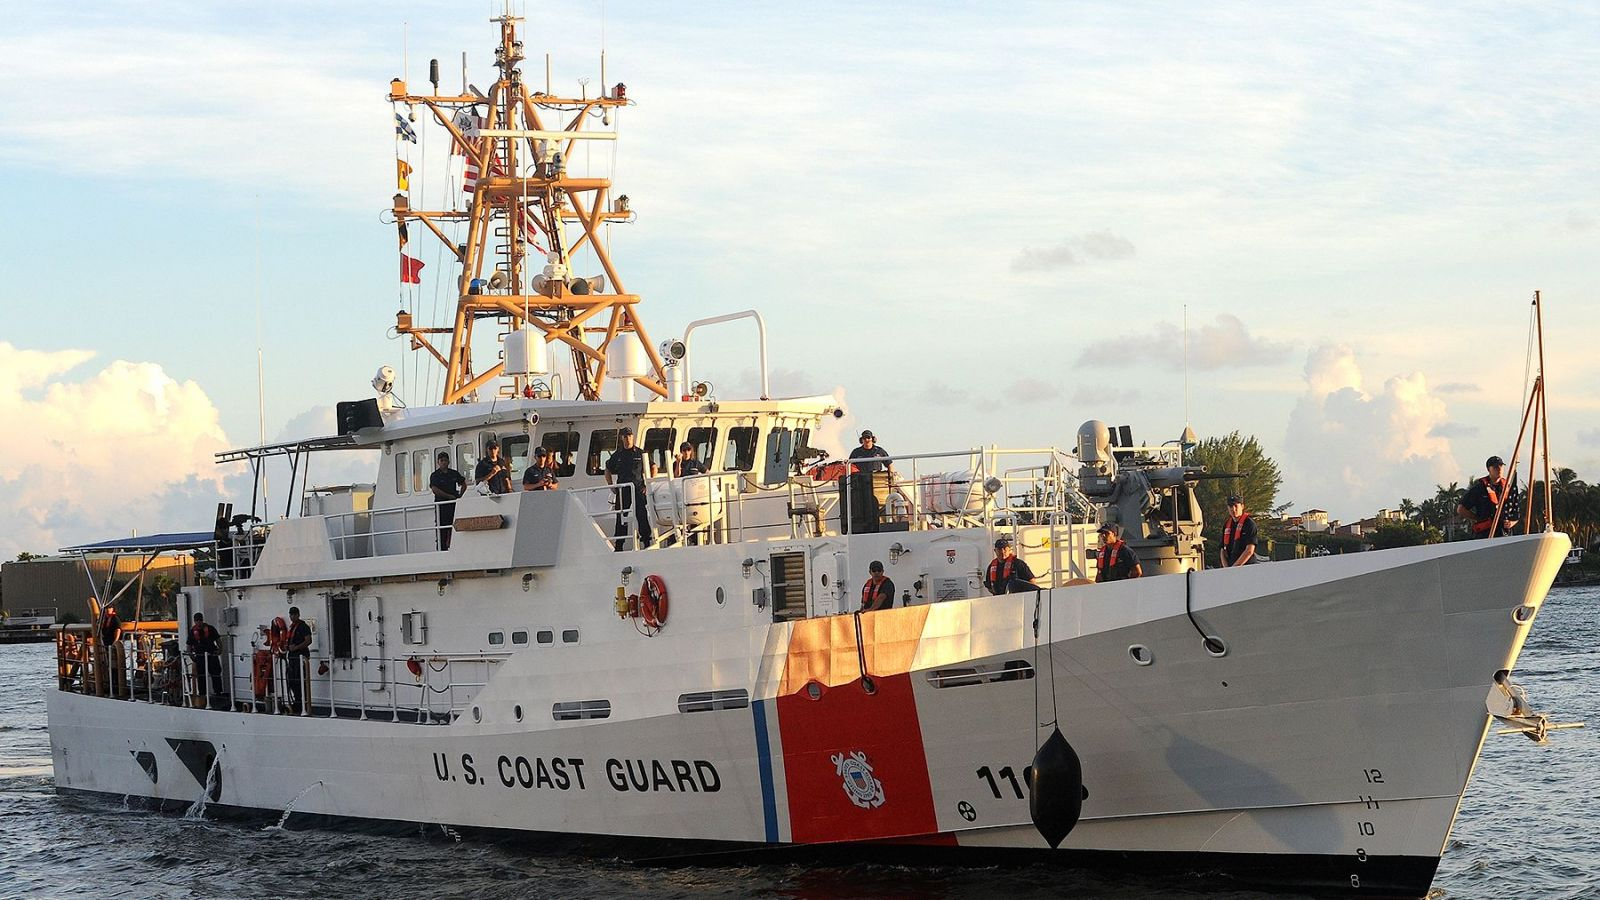 USCG Cutters - Fortress Anchors